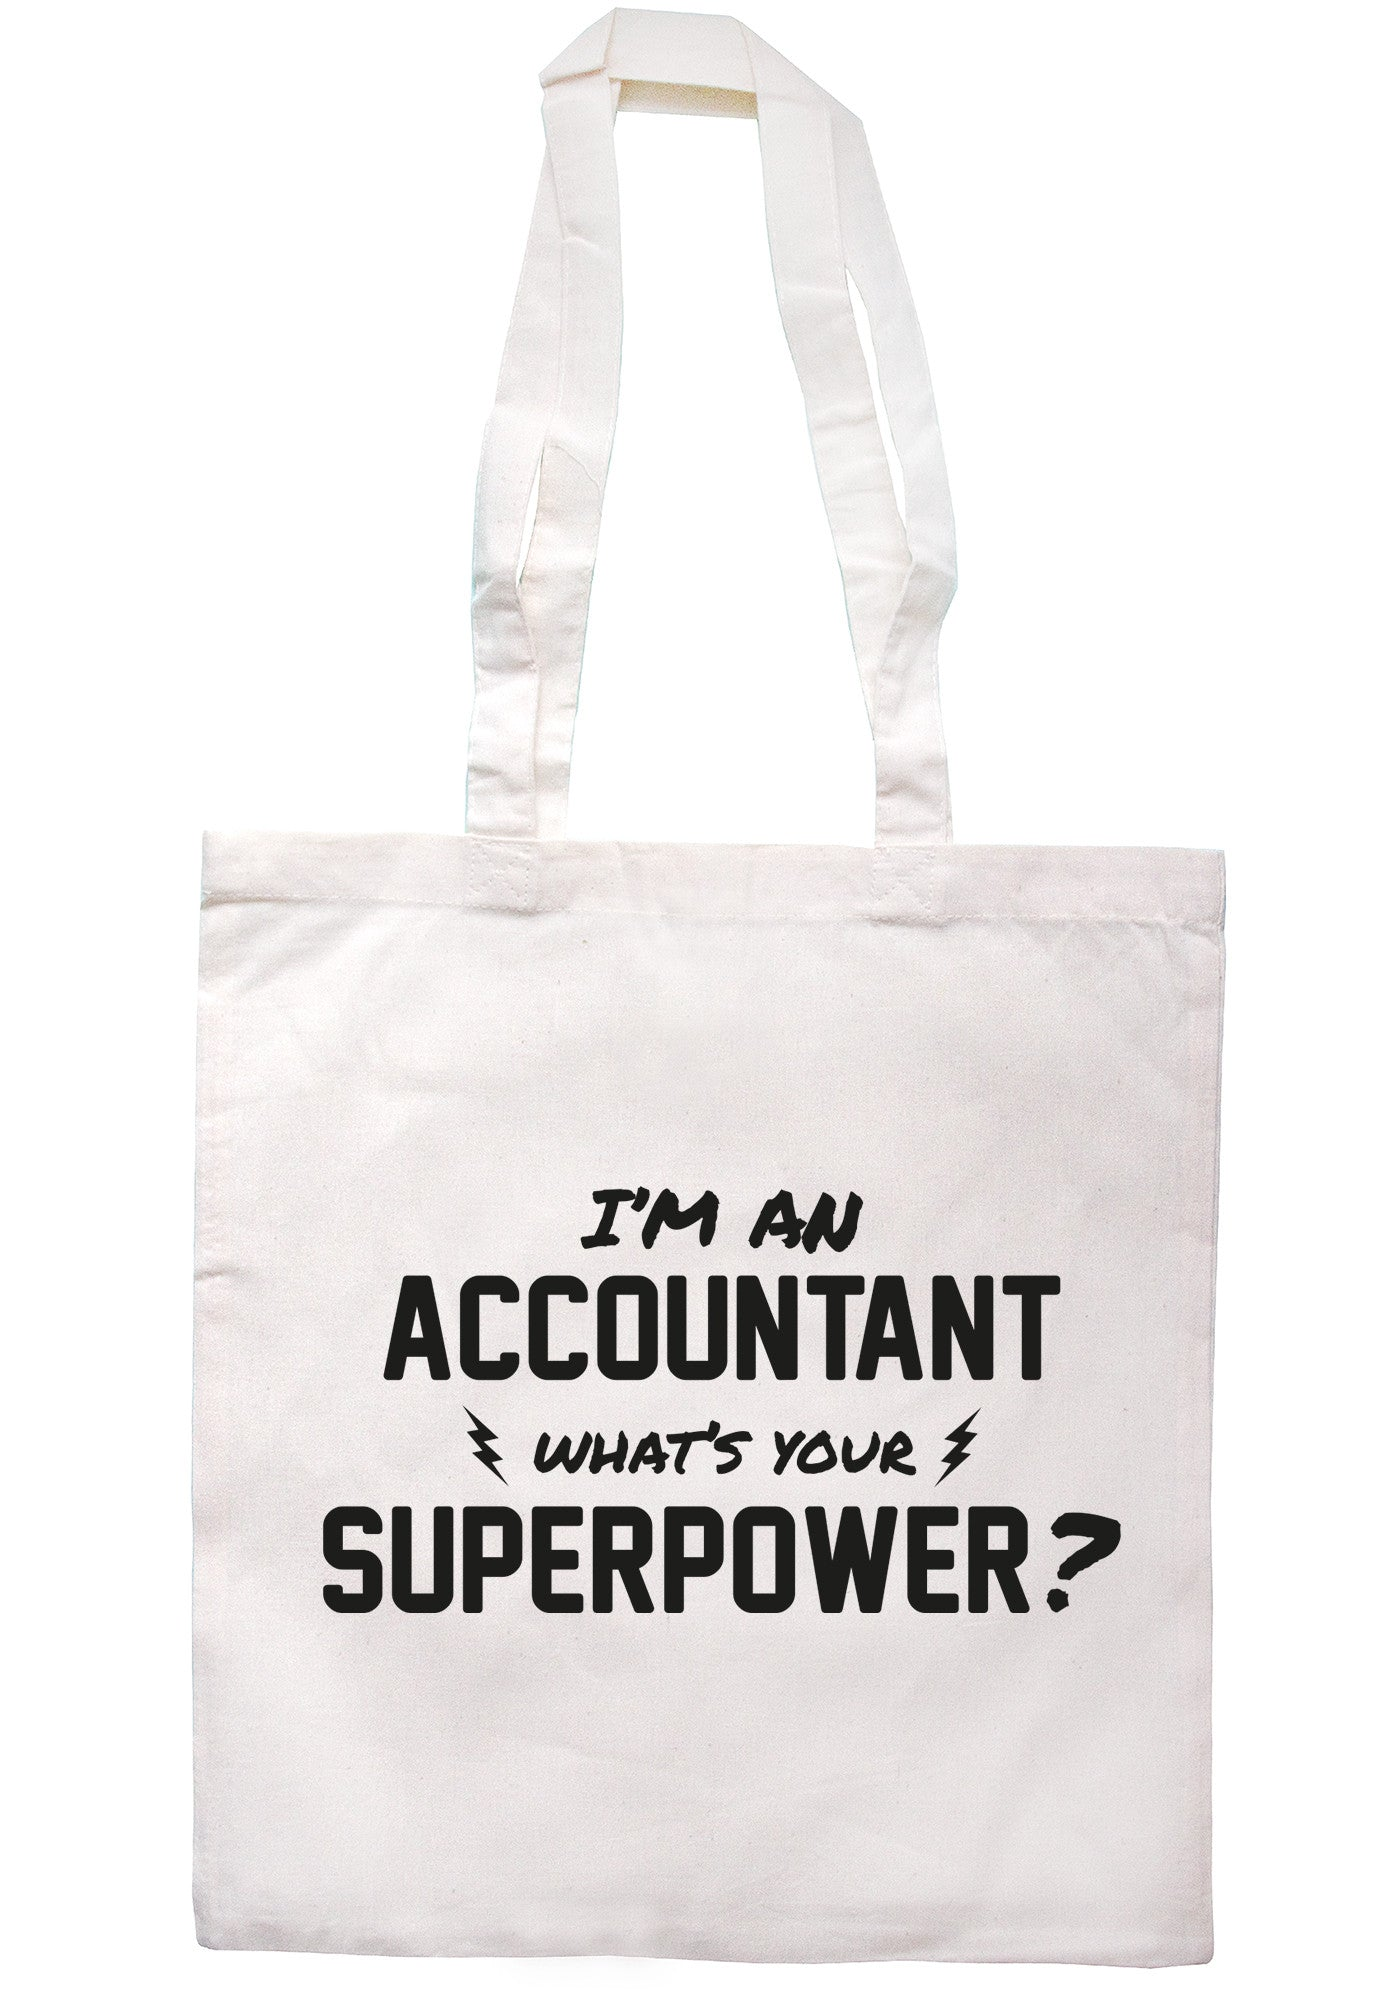 I'm An Accountant What's Your Superpower? Tote Bag TB0498 - Illustrated Identity Ltd.